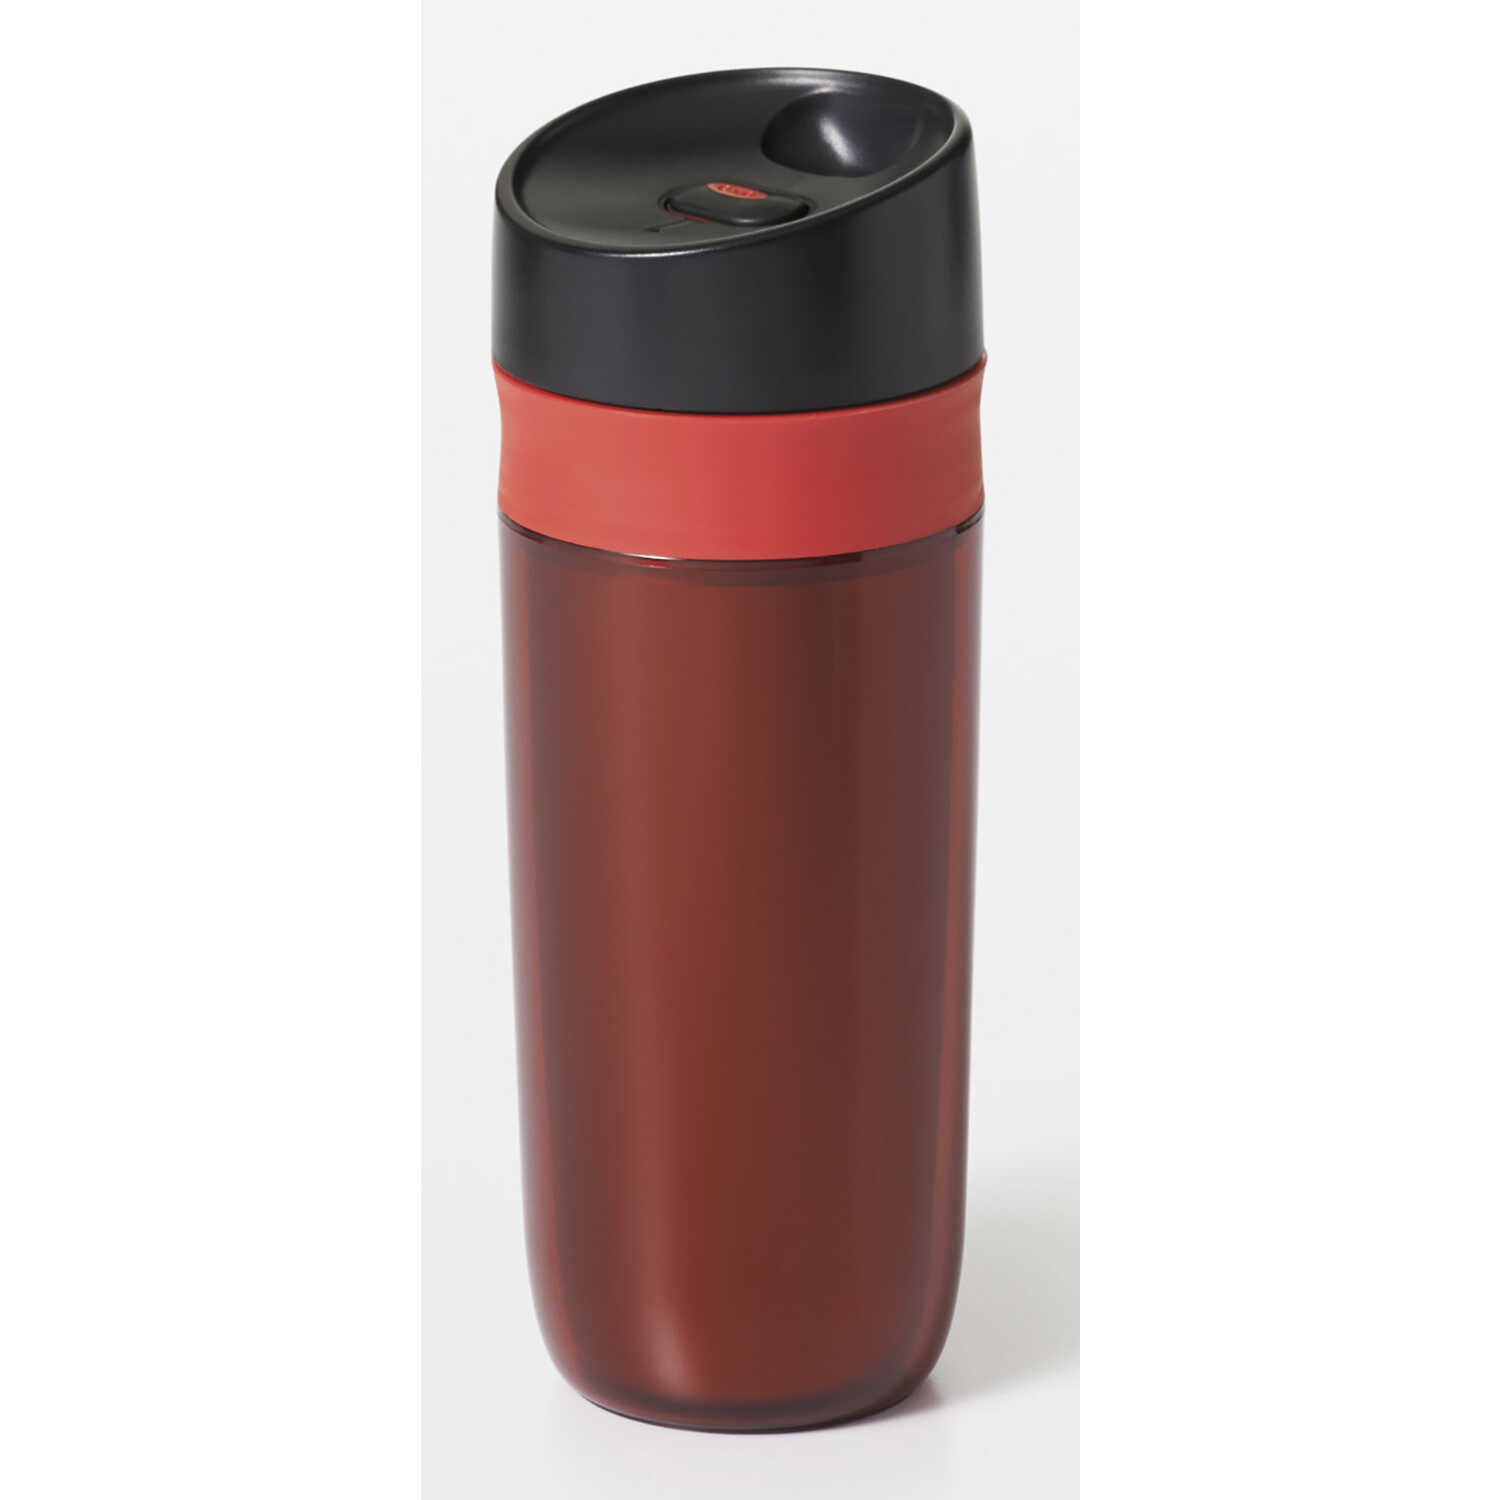 OXO  Good Grips  Red  Plastic  Travel Mug  15 oz.